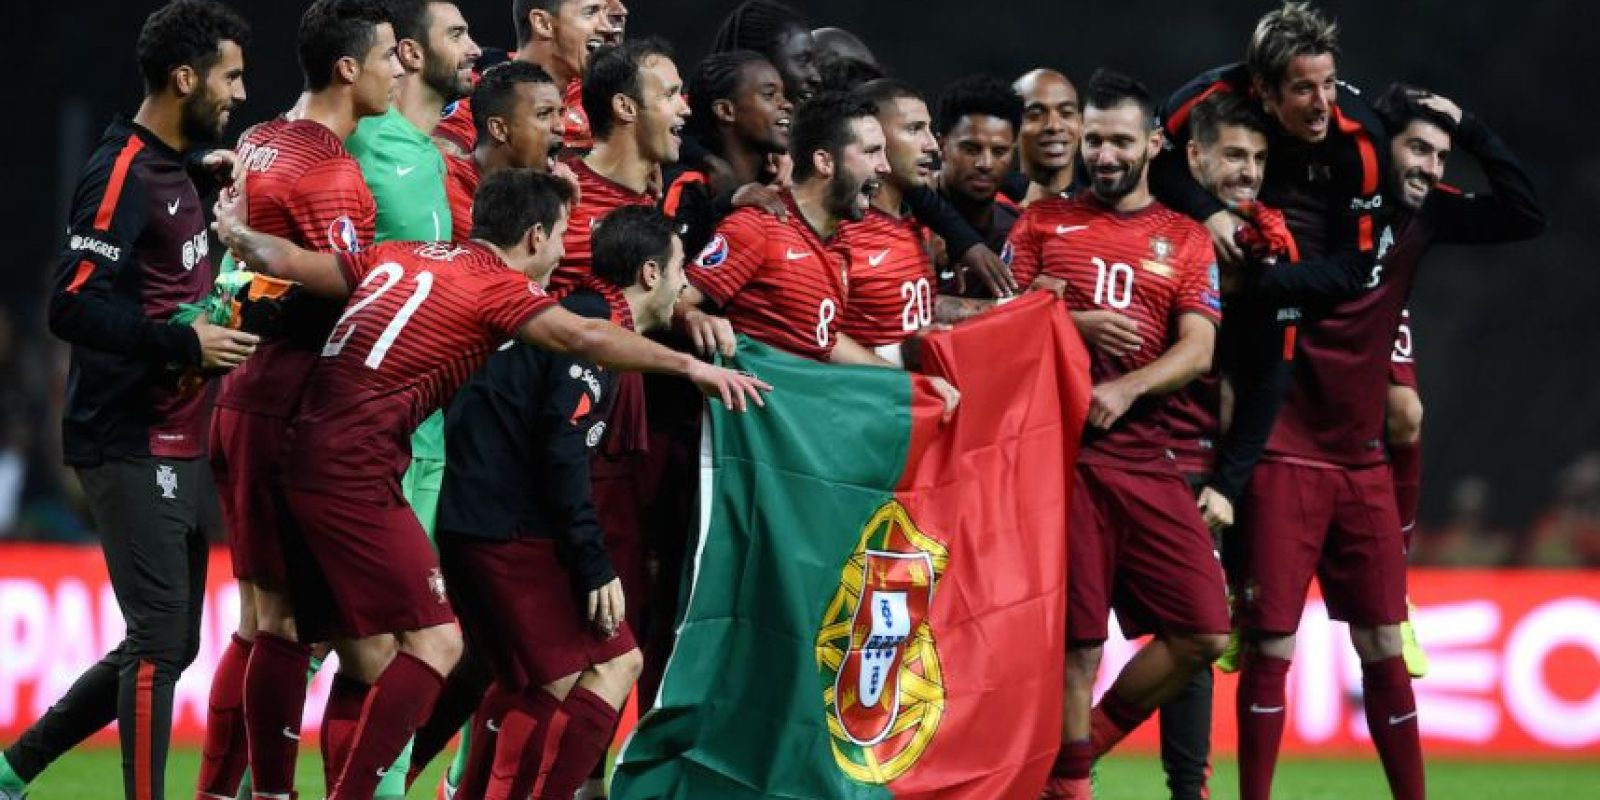 BOMBO 1: Portugal Foto: AFP